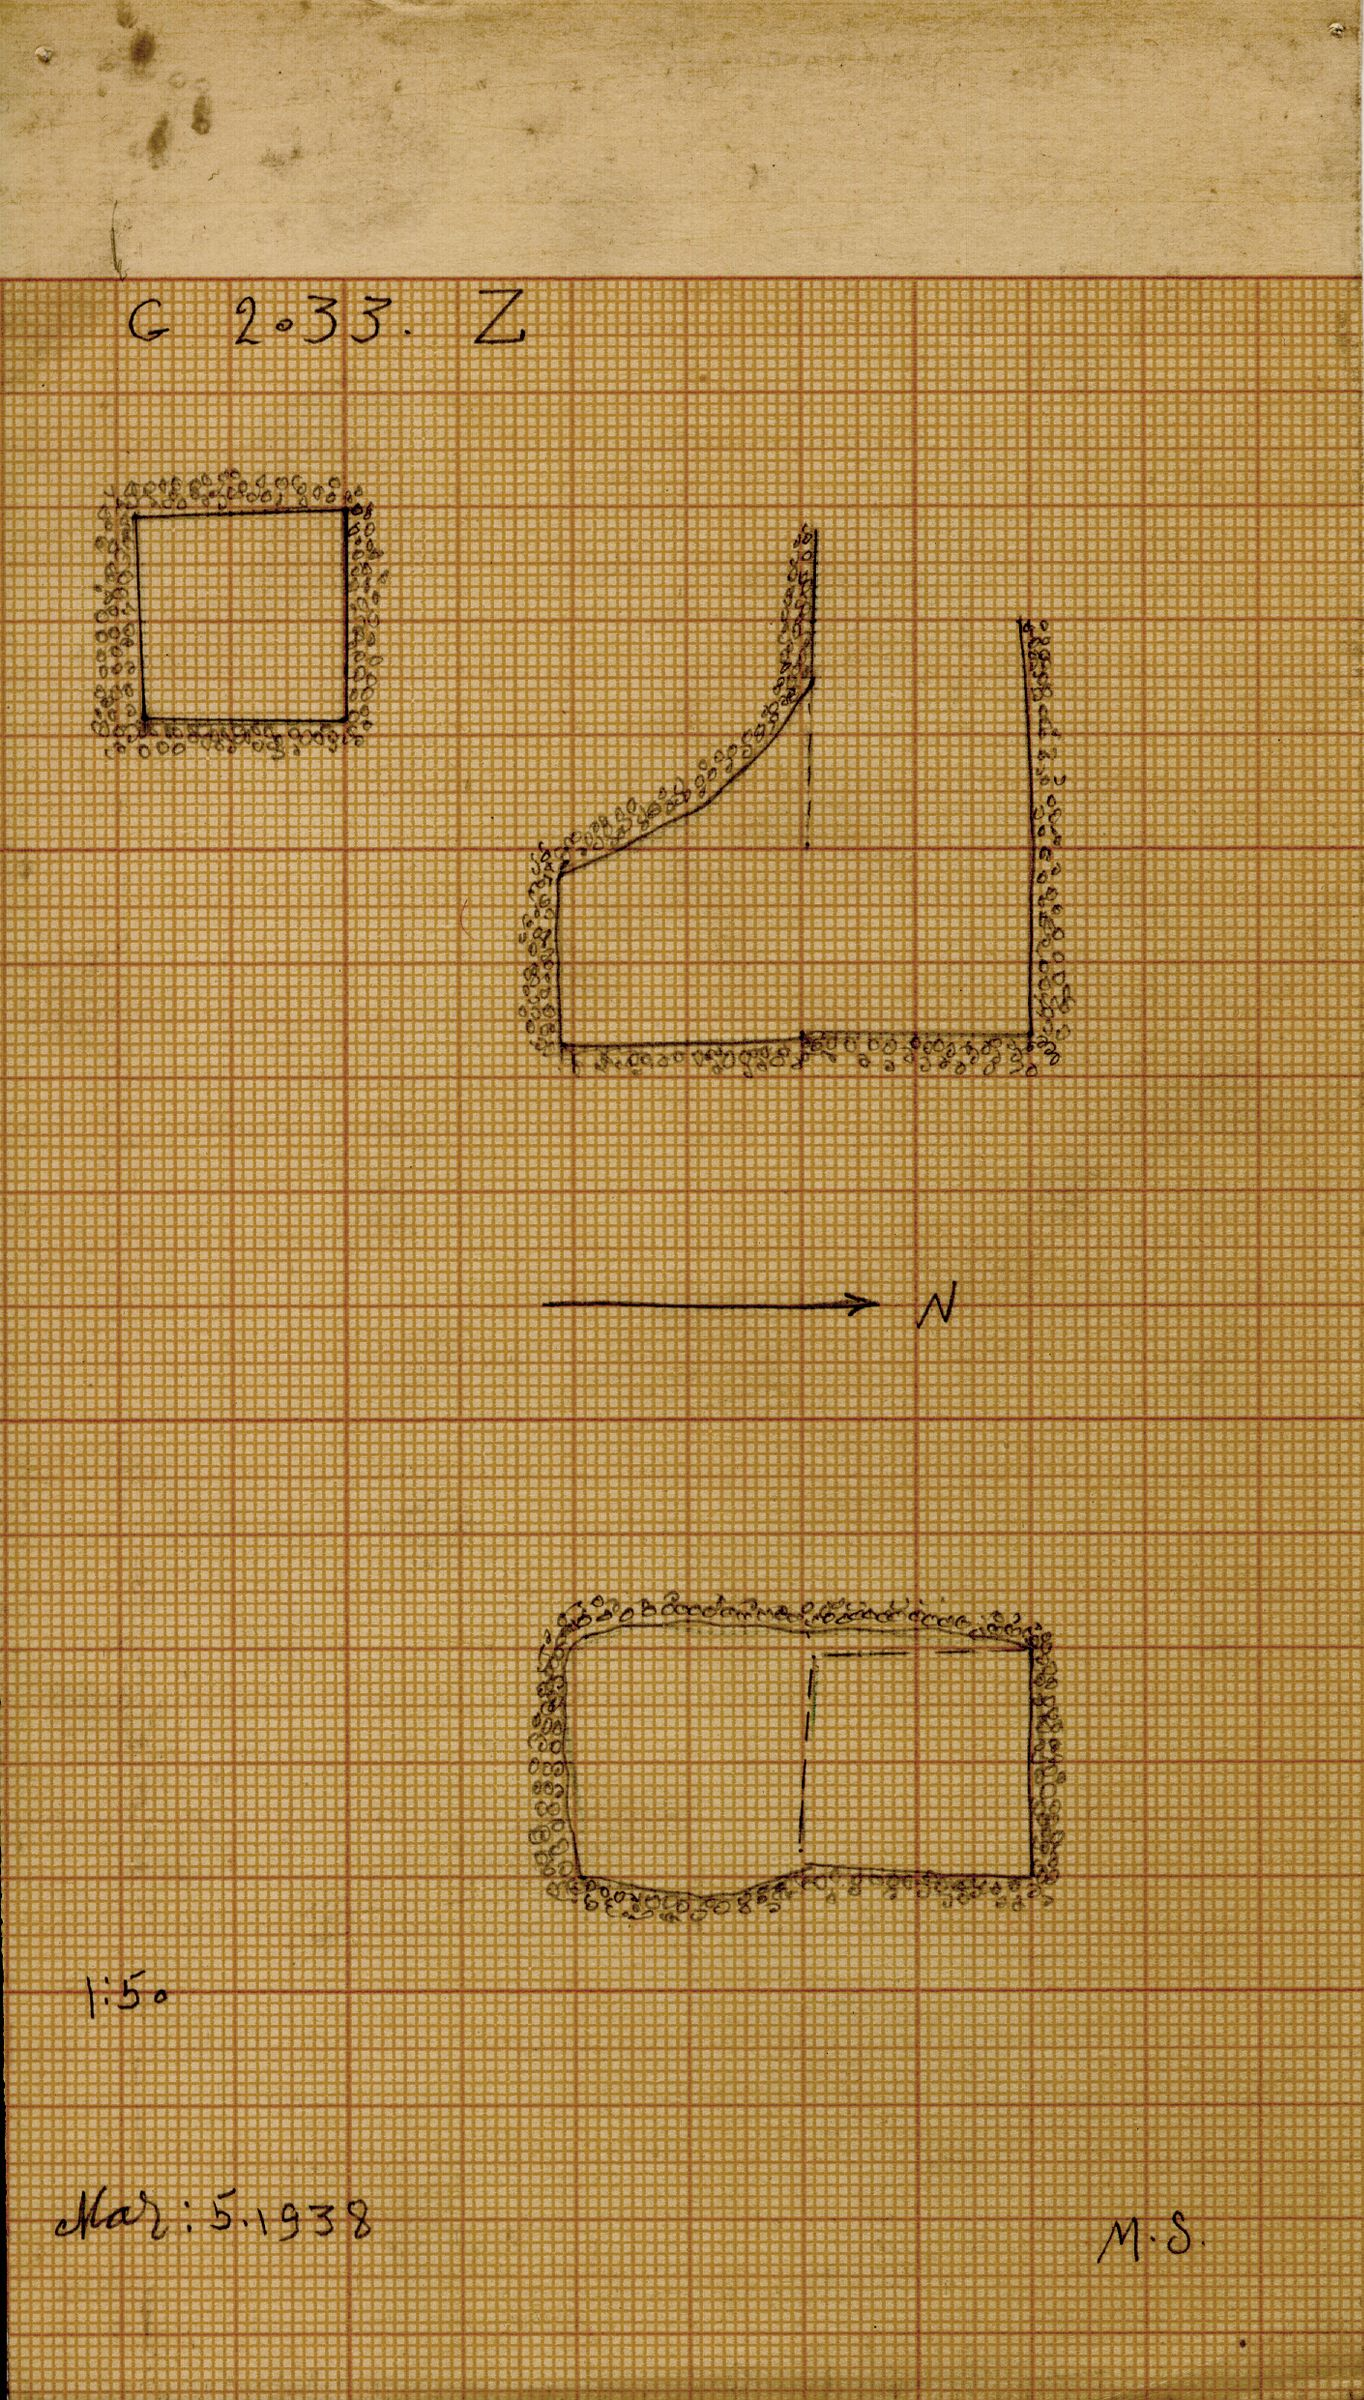 Maps and plans: G 2033, Shaft Z